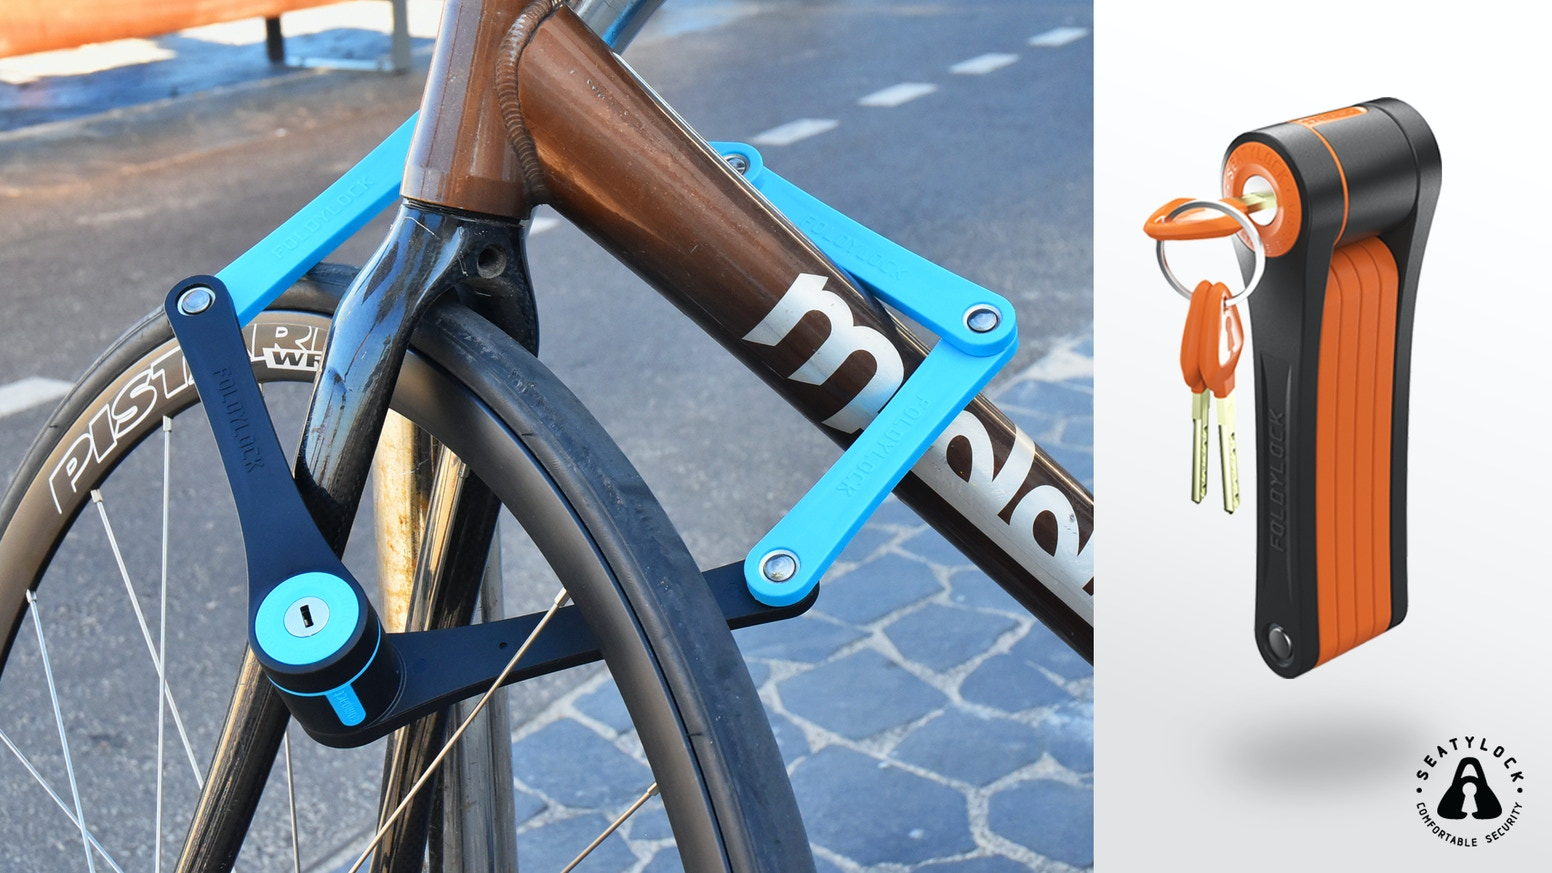 A premium folding bike lock features the perfect MIX between protection, weight and design